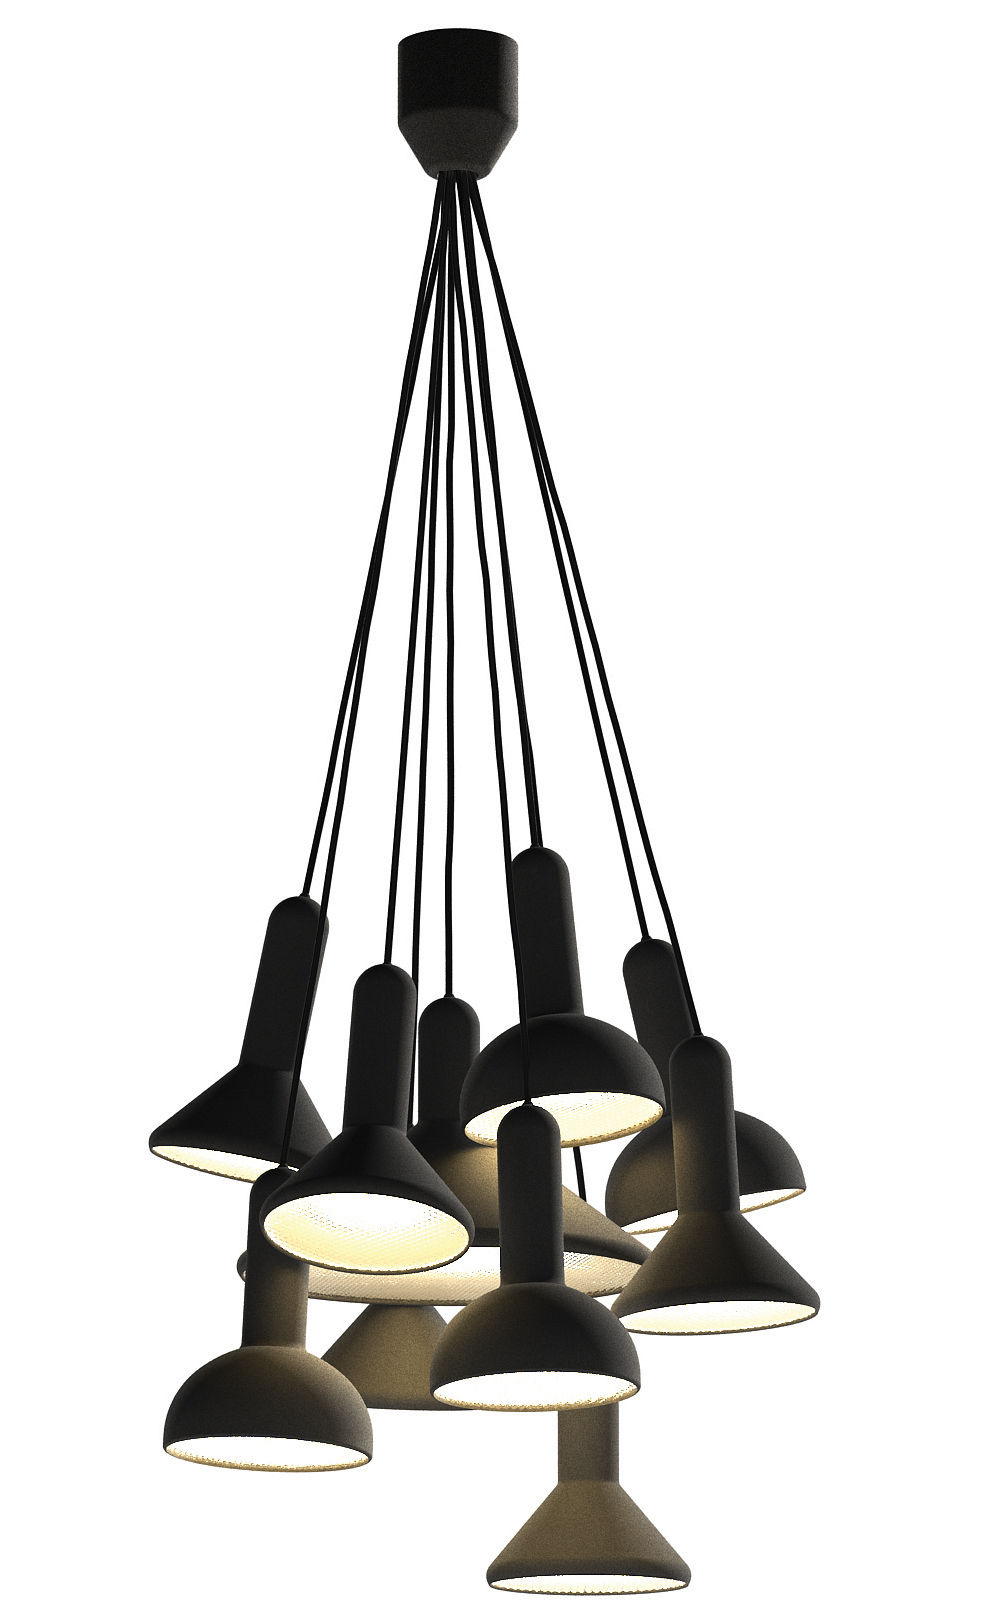 Luminaire - Suspensions - Suspension Torch Light / ensemble de 10 suspensions - Established & Sons - Noir / Câbles noirs - PVC